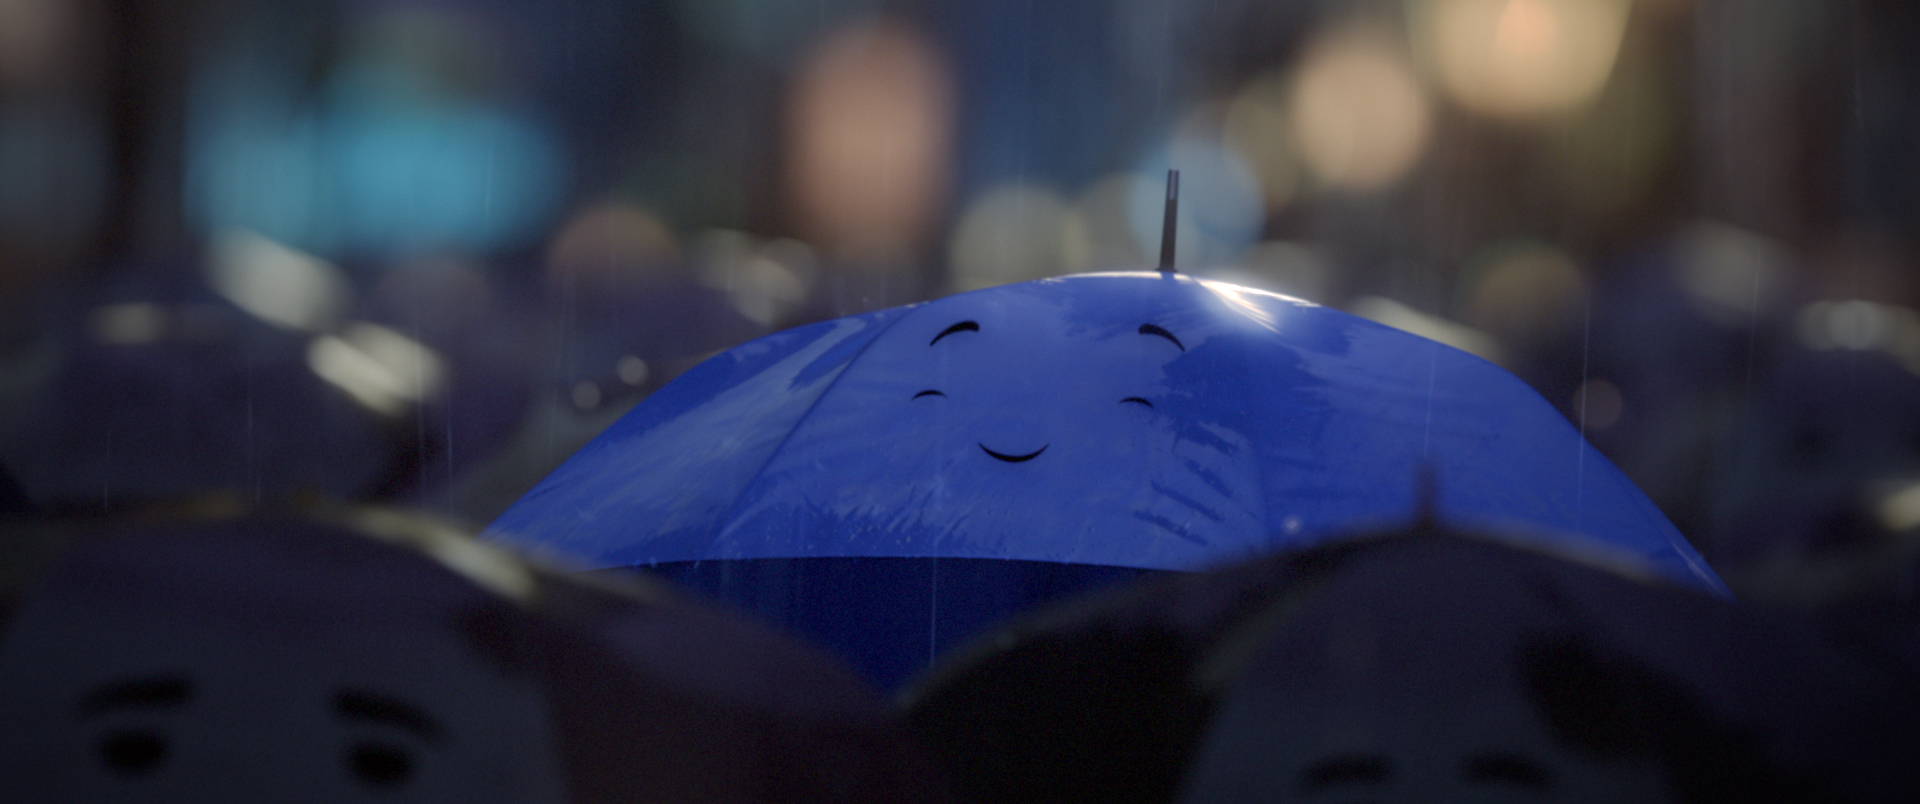 Five Things I Learned About 'The Blue Umbrella' From Director Saschka Unseld (Exclusive Image)